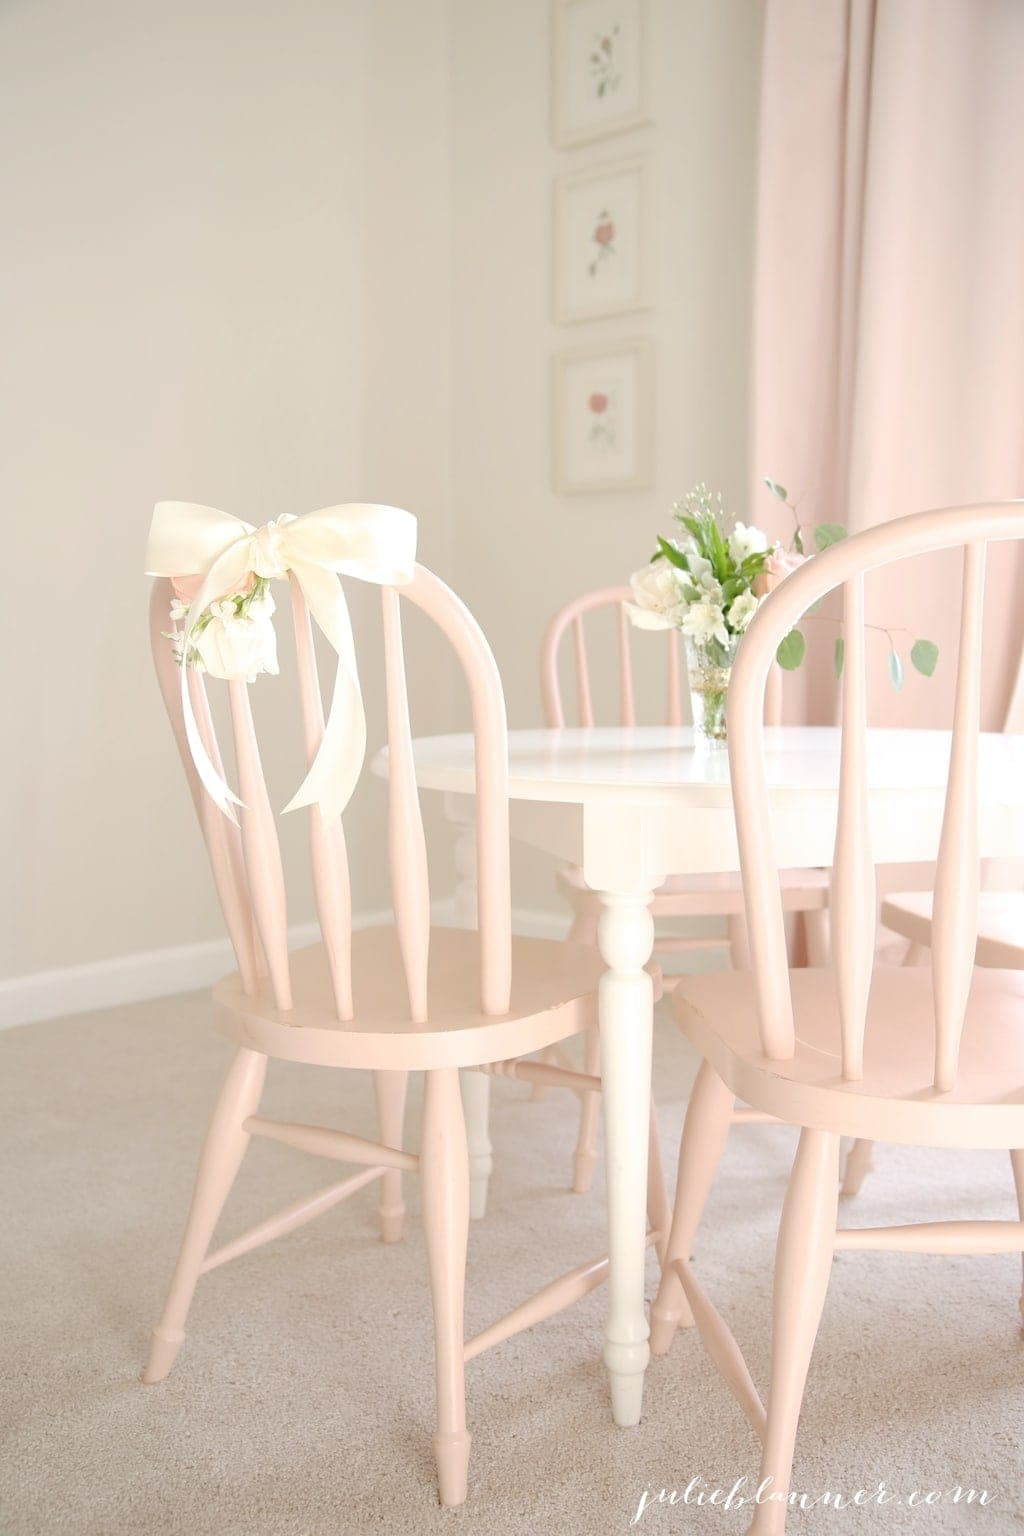 DIY floral chair swag - beautiful way to celebrate the guest of honor